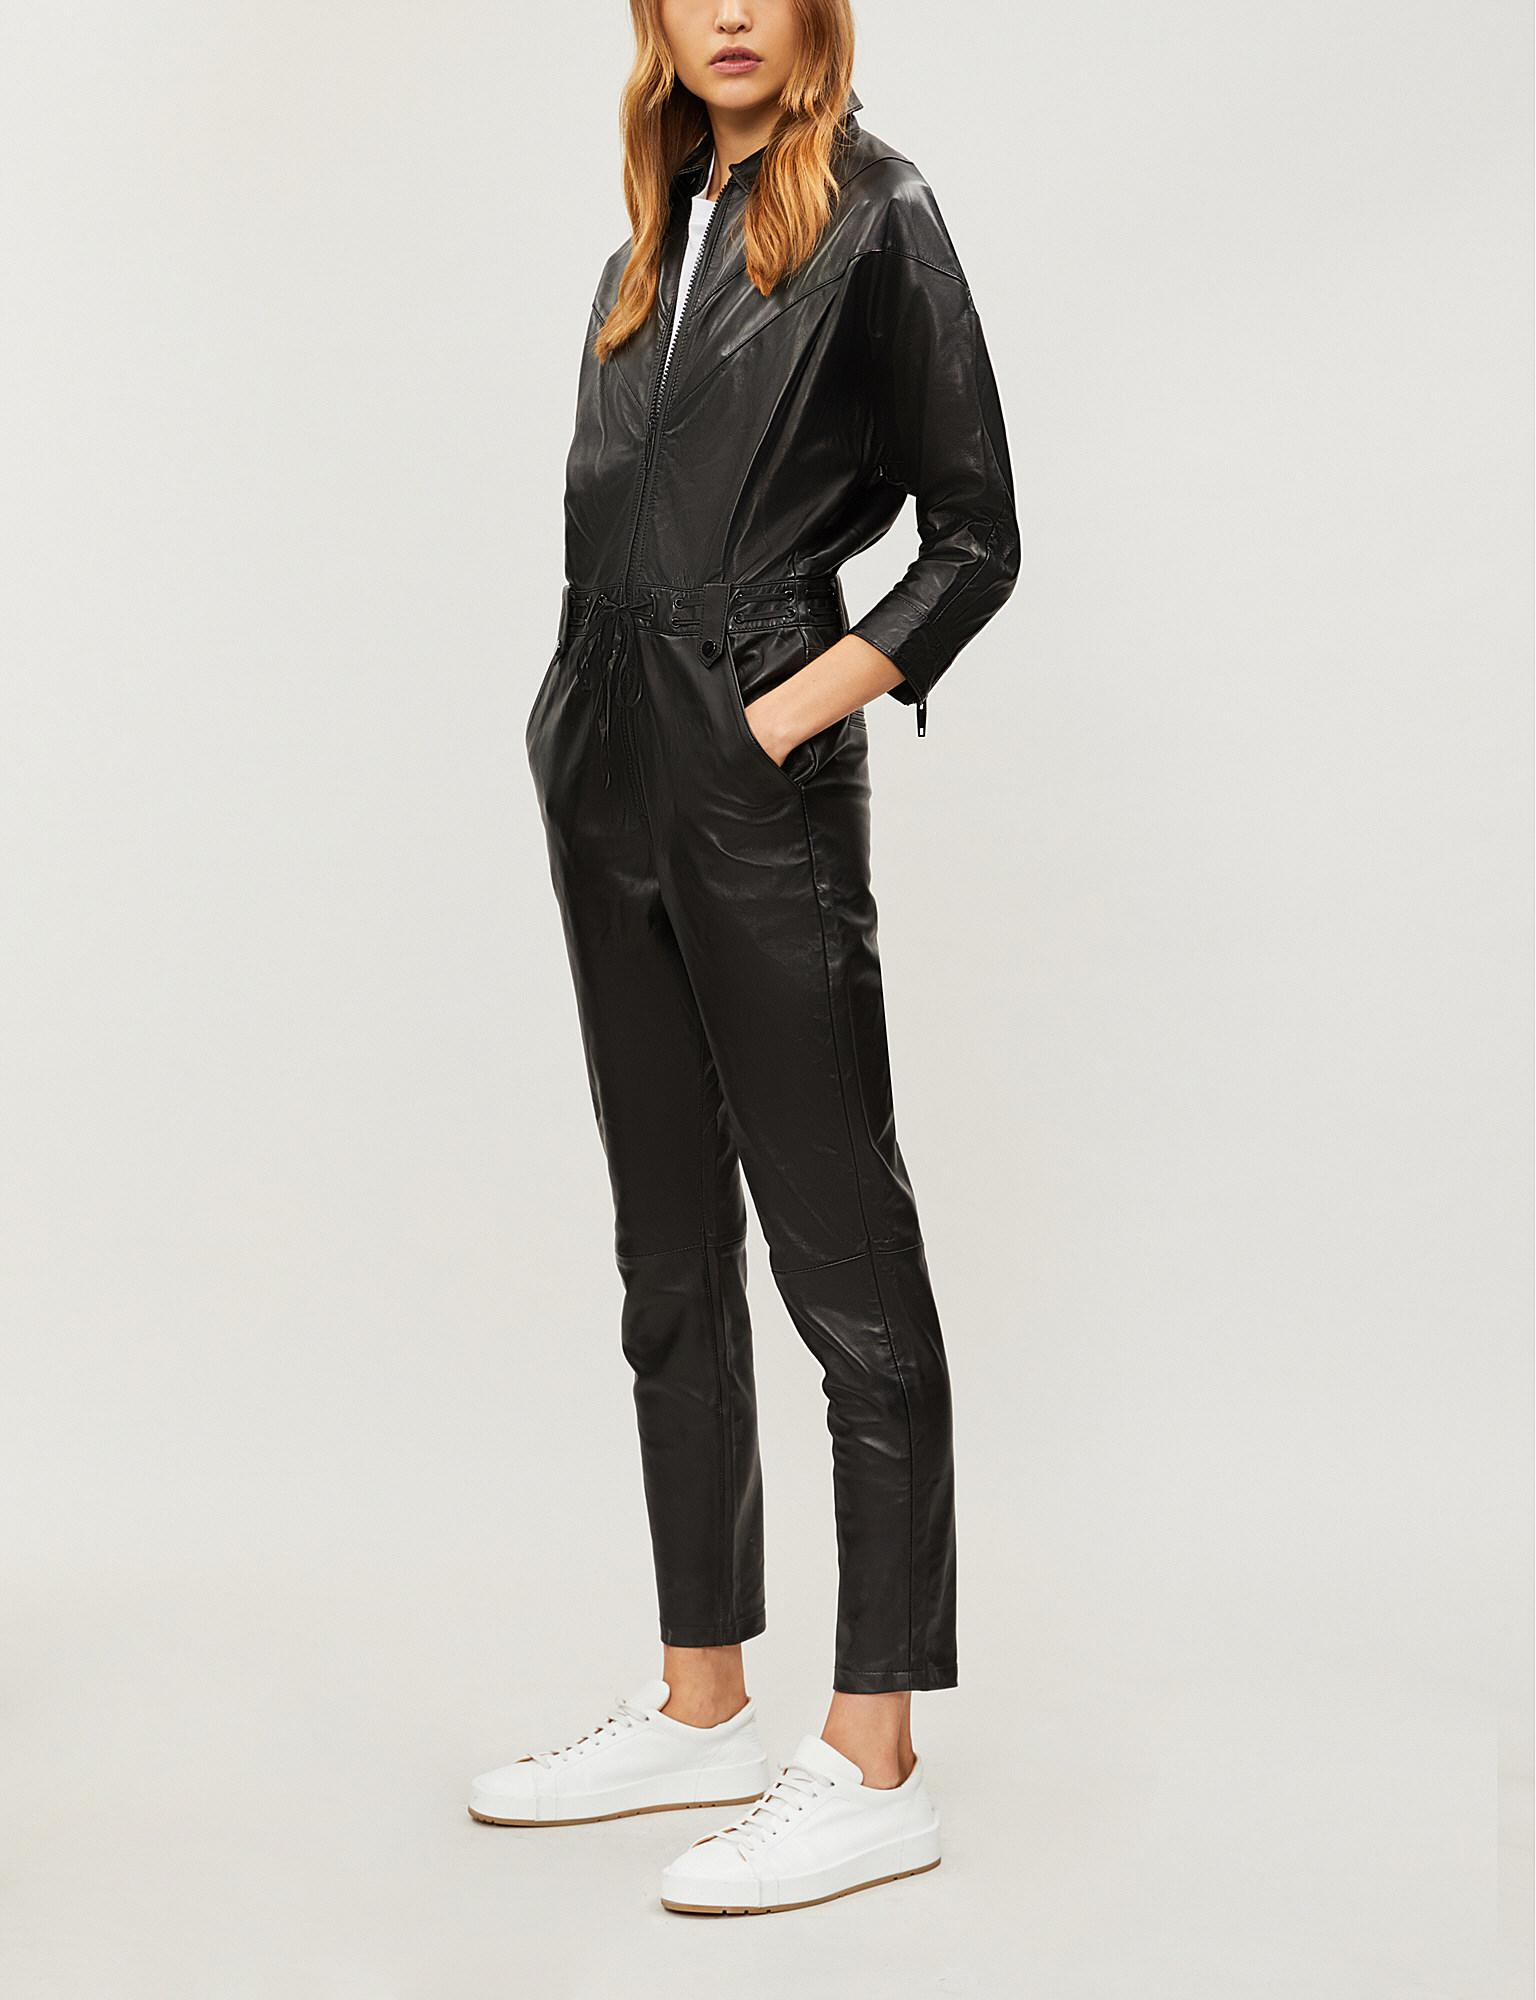 9e5184d10f The Kooples Straight-leg Leather Jumpsuit in Black - Lyst